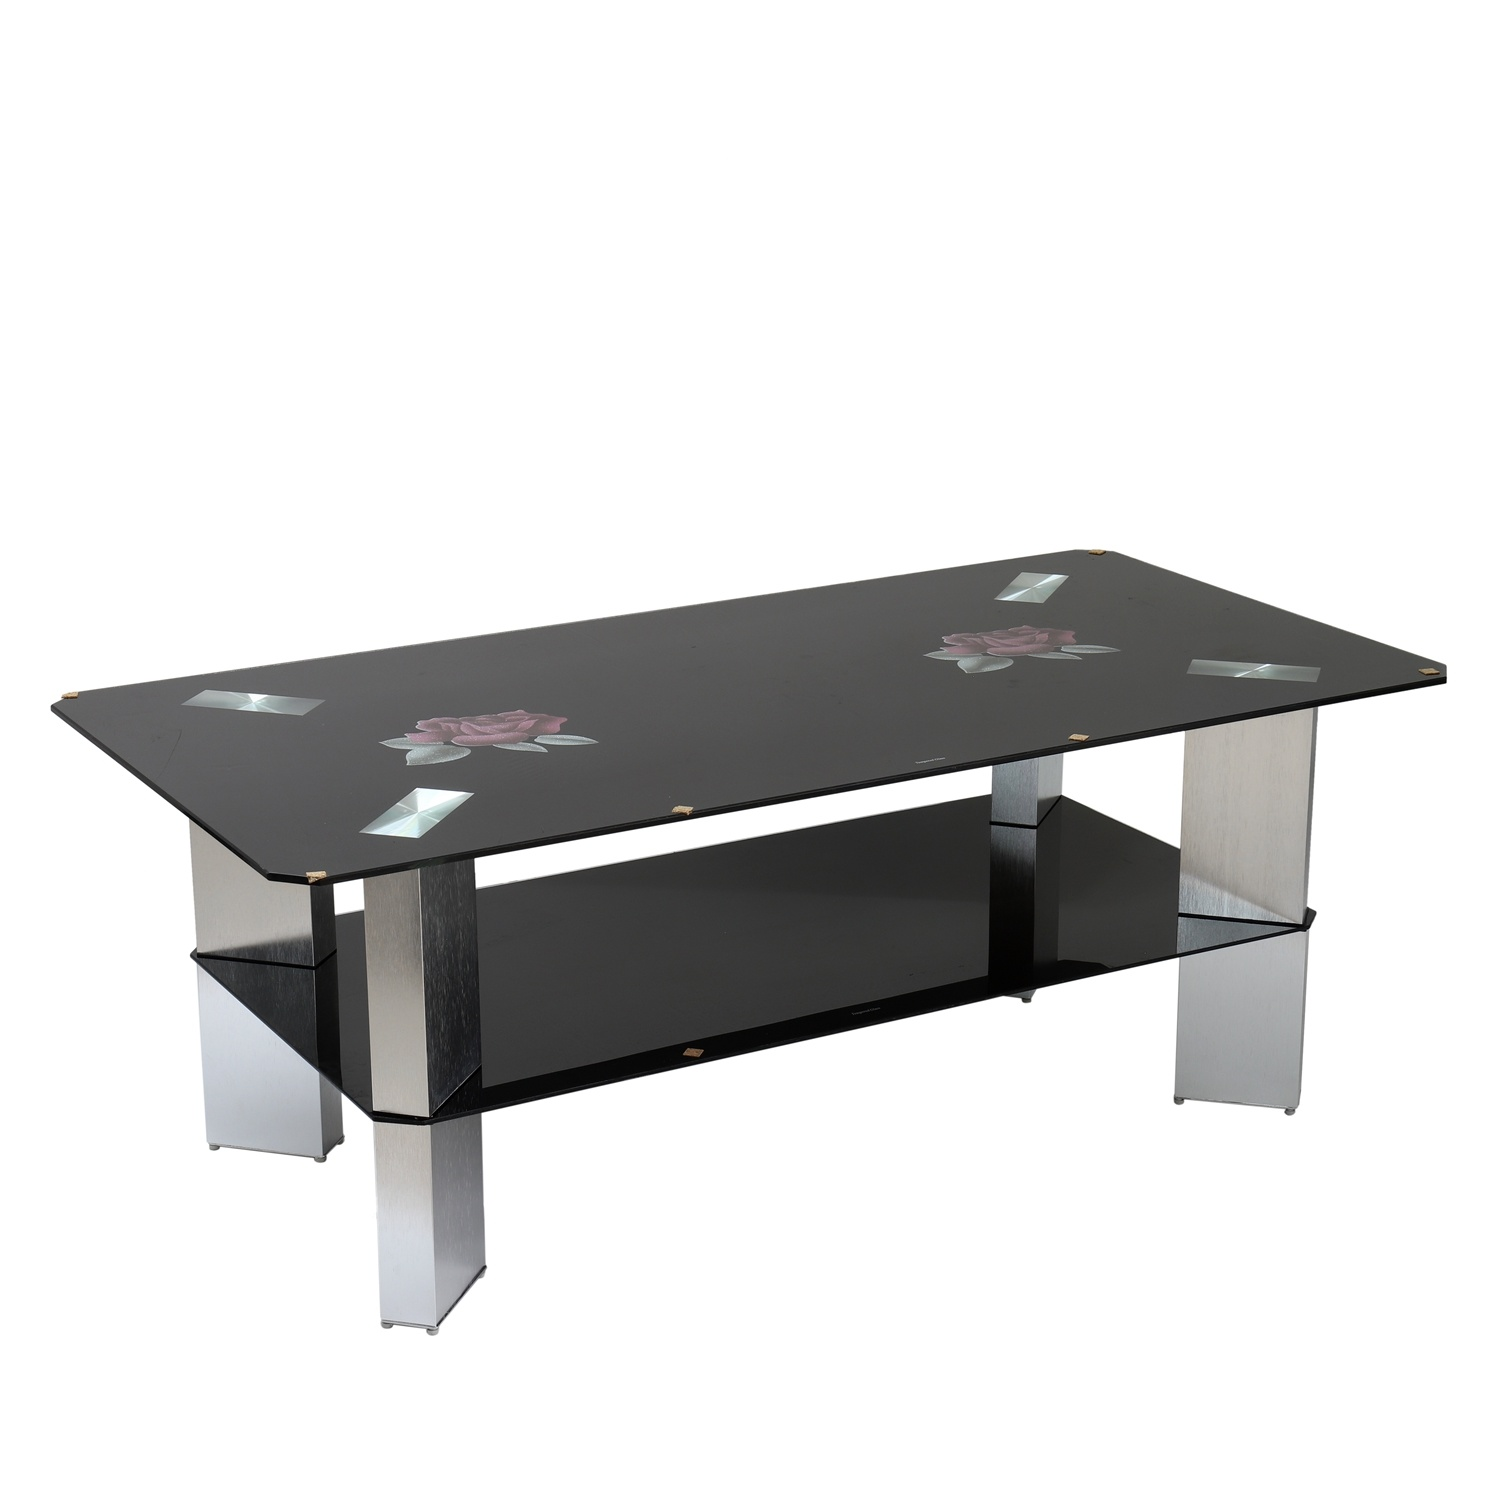 China Tempered Glass Coffee Table Aluminum Leg New Design ...